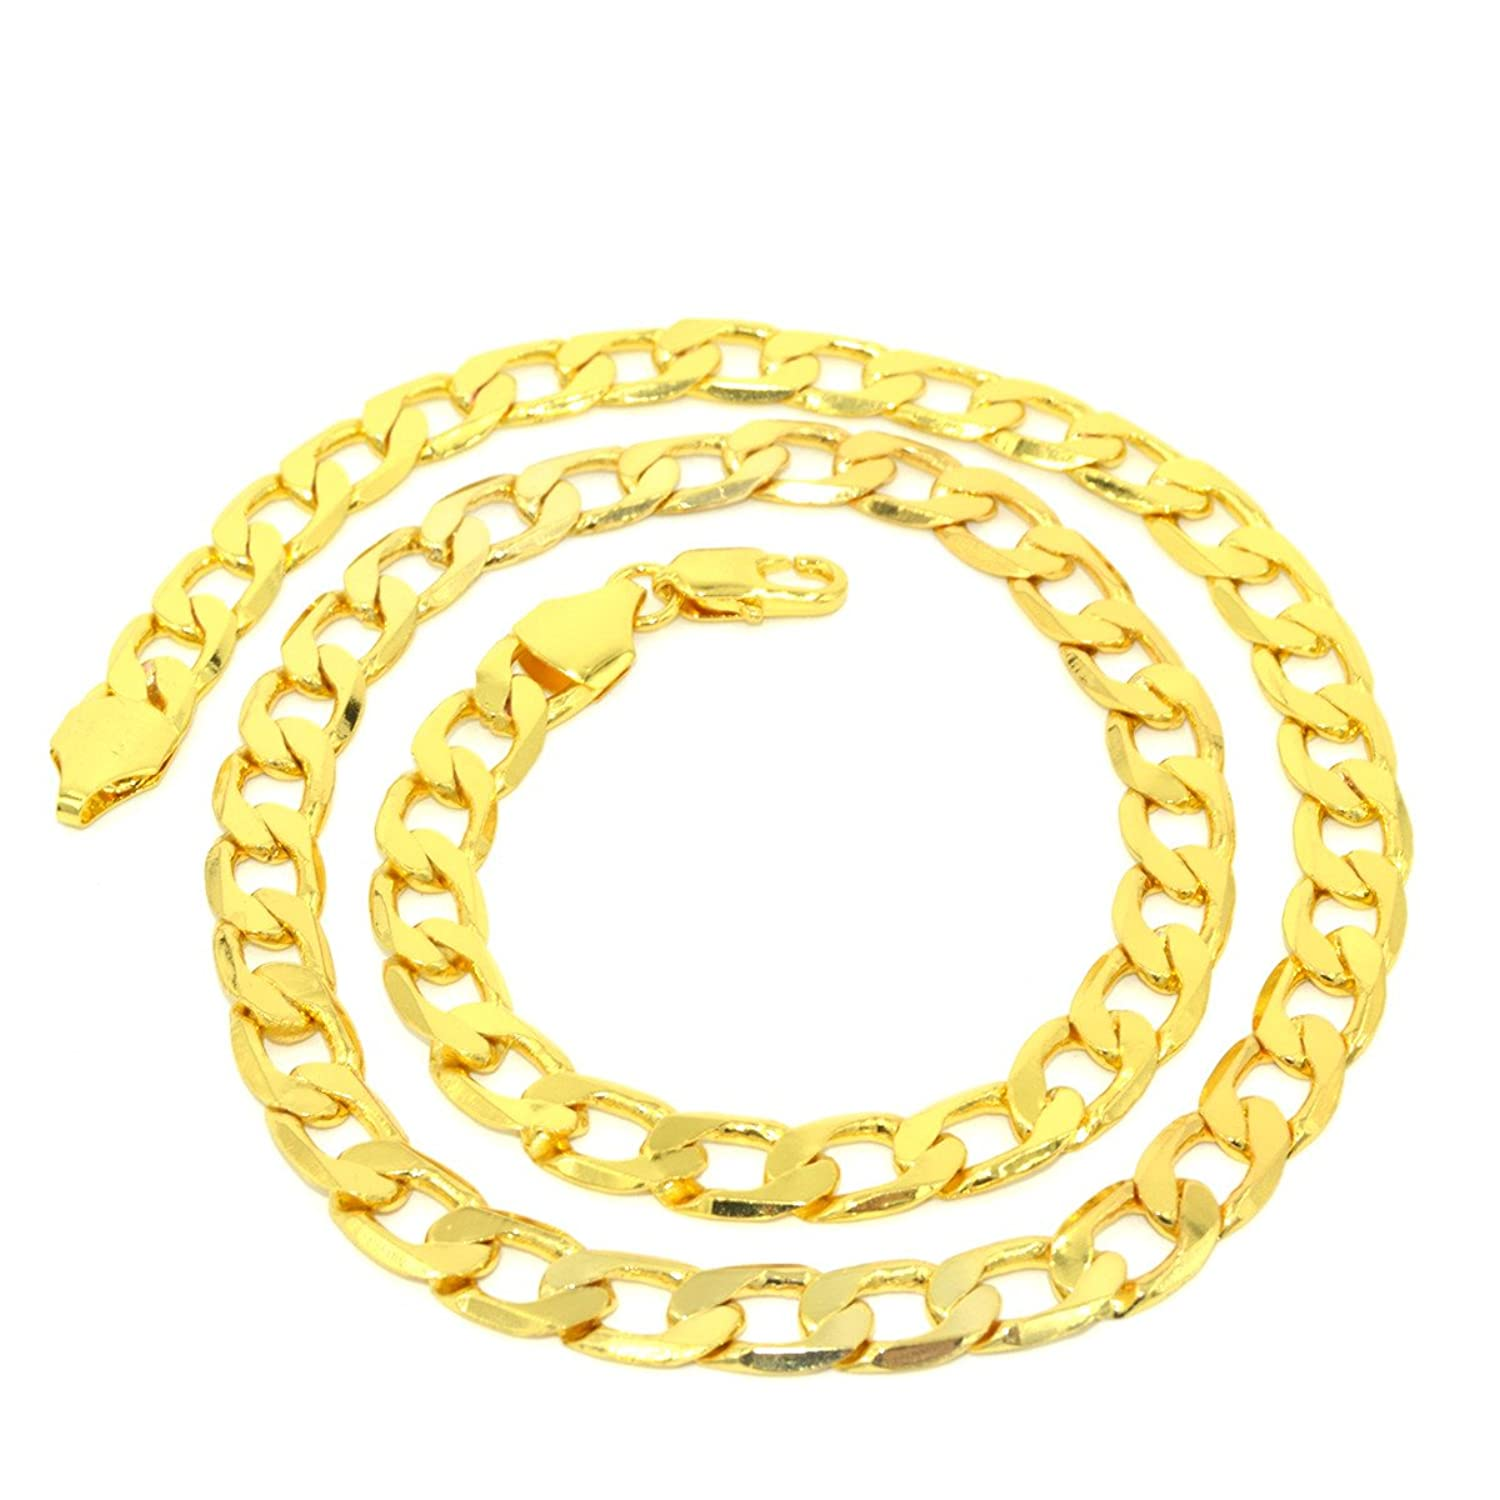 gold necklace chain artificial buy product chains detail bead xuping jewellery